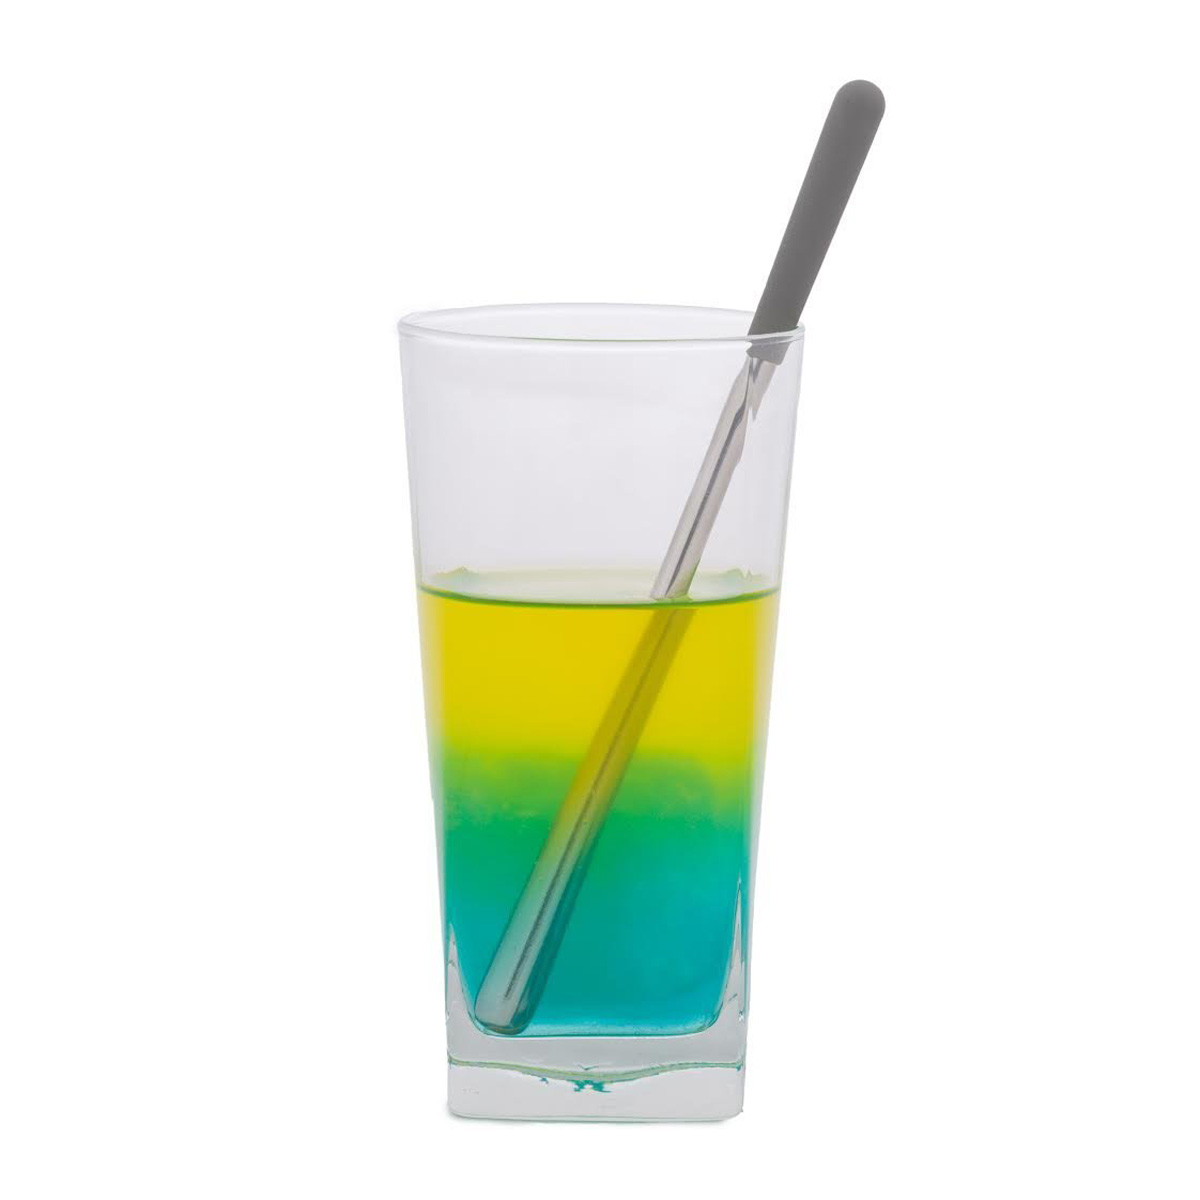 Chill O Stainless Steel Swizzle Sticks Chill And Stir